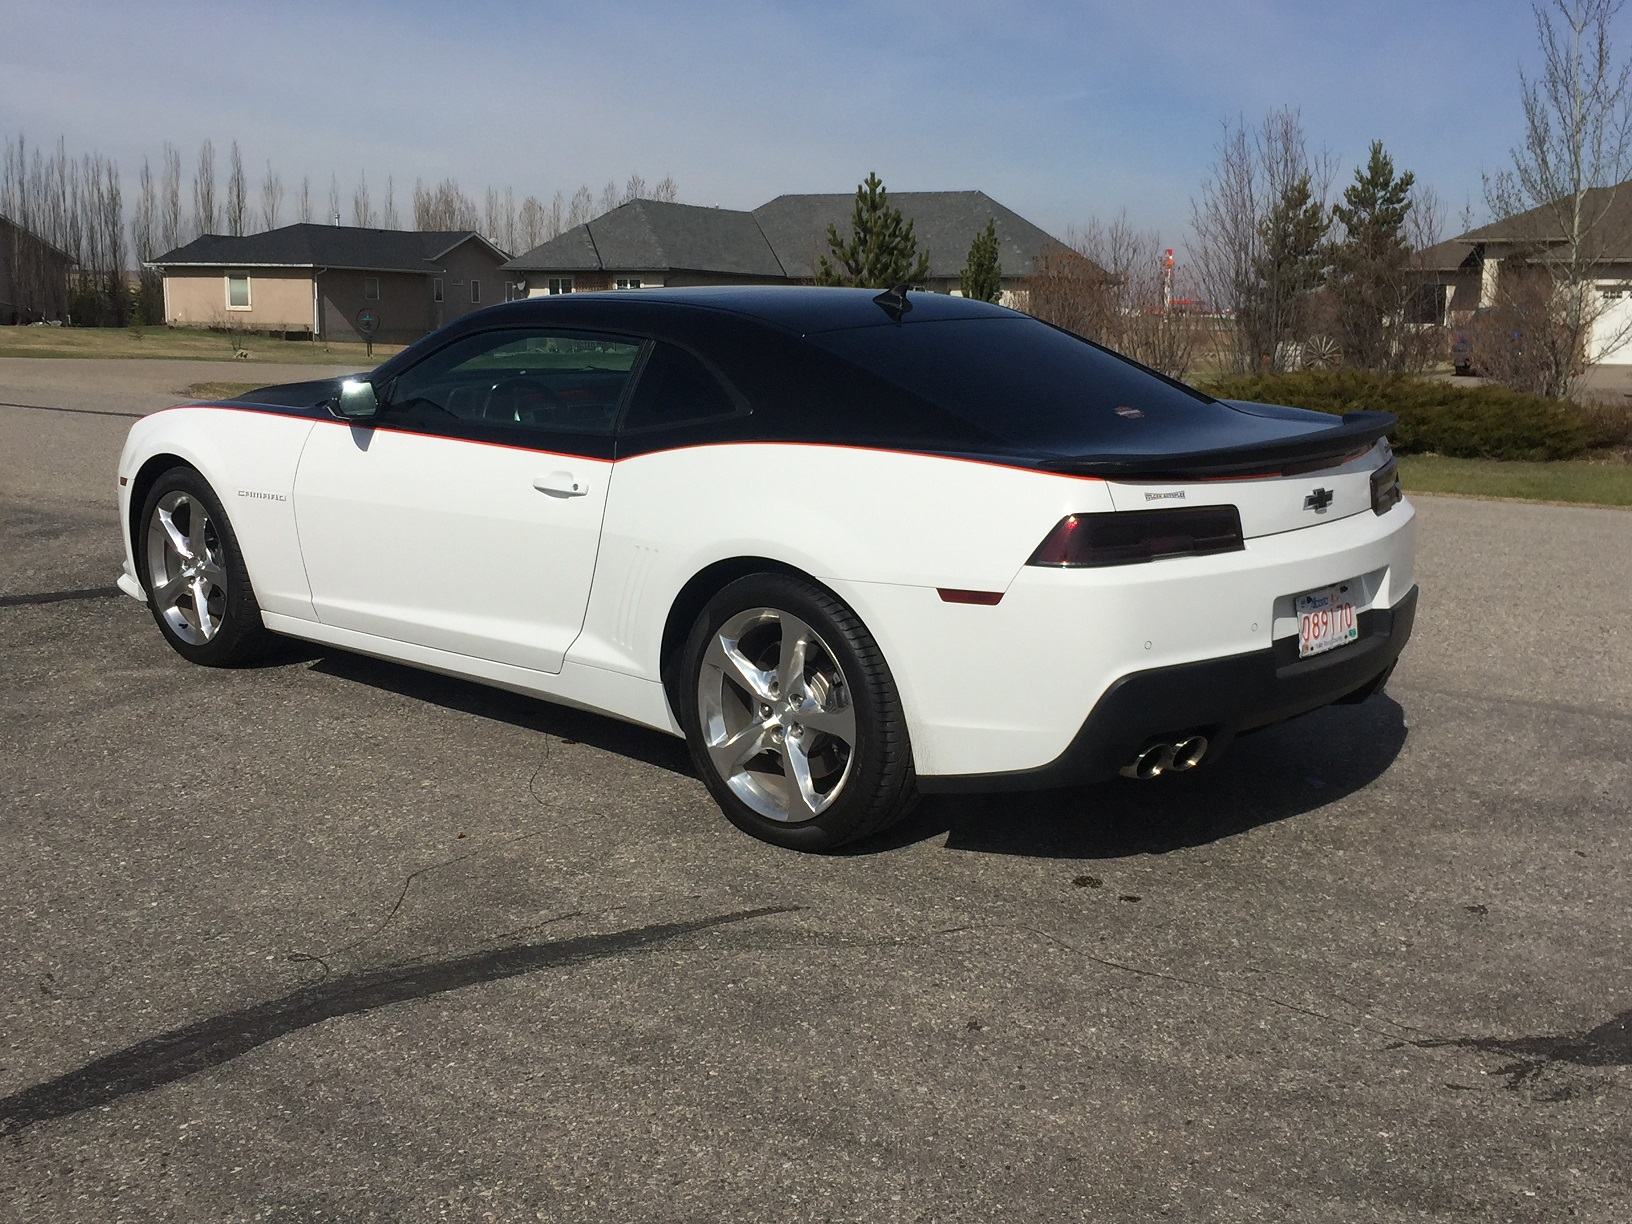 2015 Chevy Camaro SS 2SS – Okotoks Collector Car